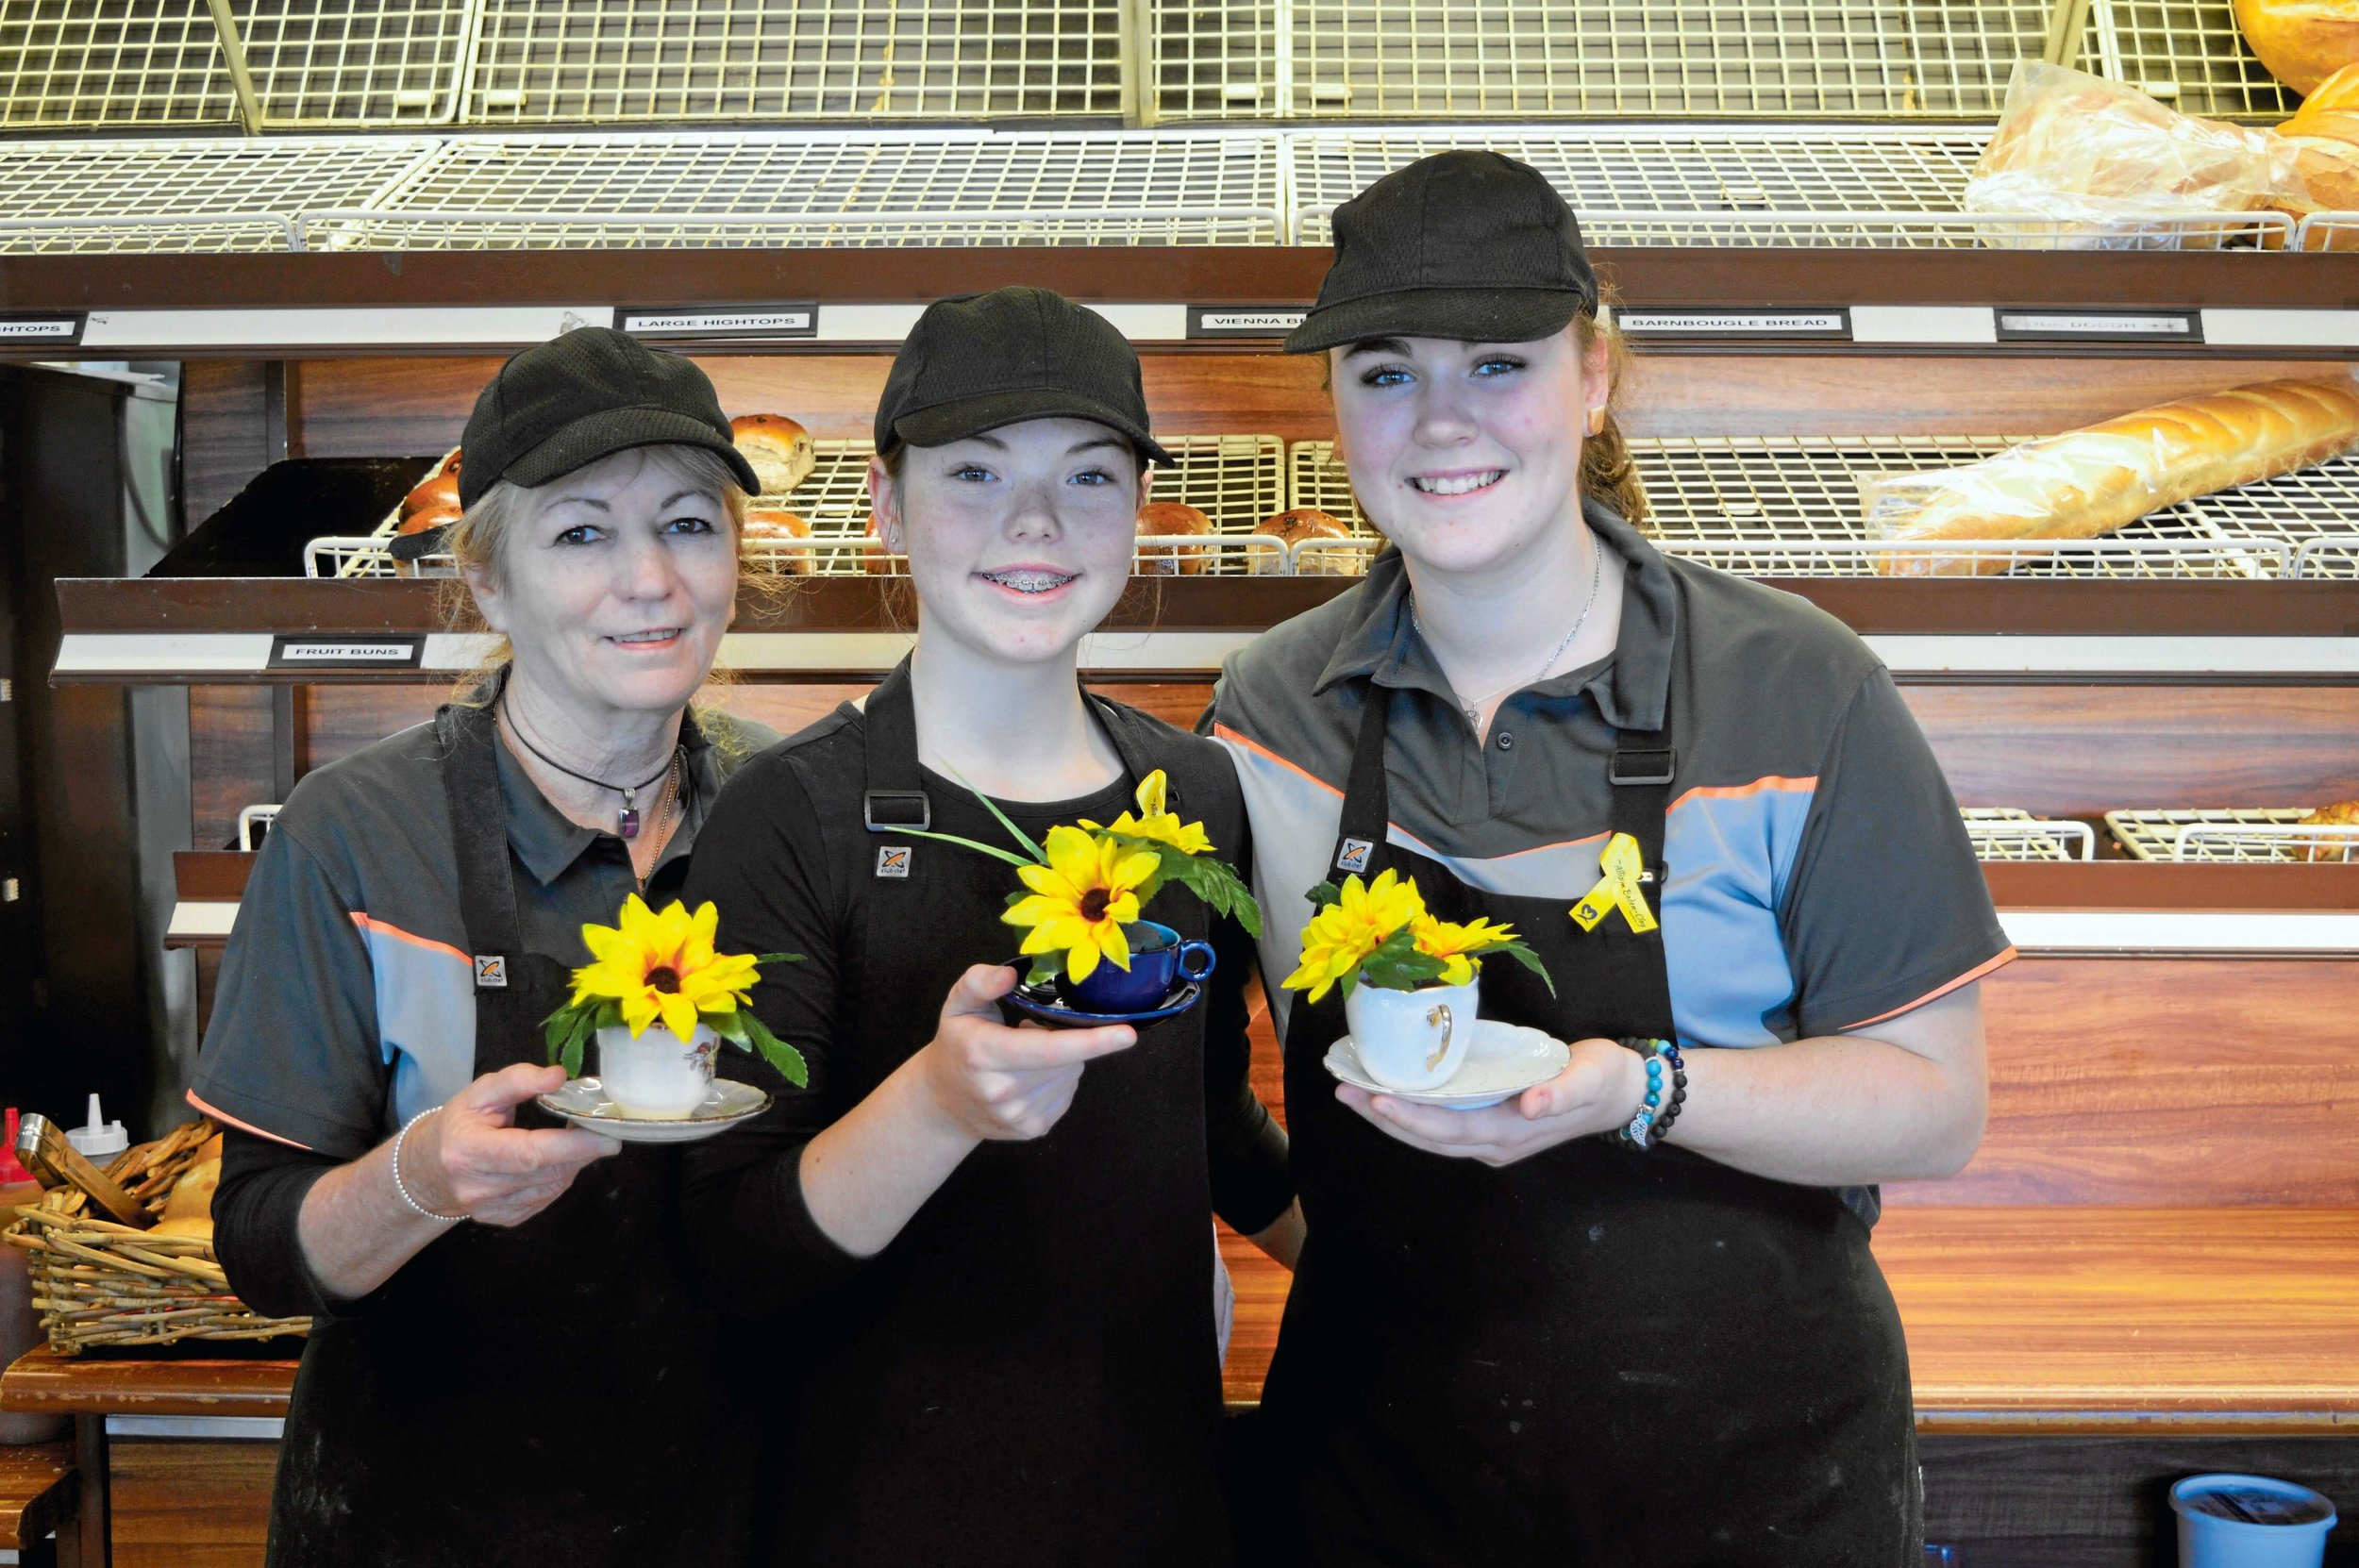 • Cottage Bakery staff Lorraine Carroll, Paige Chorley and Jemaya Hilder spreading kindness to customers.